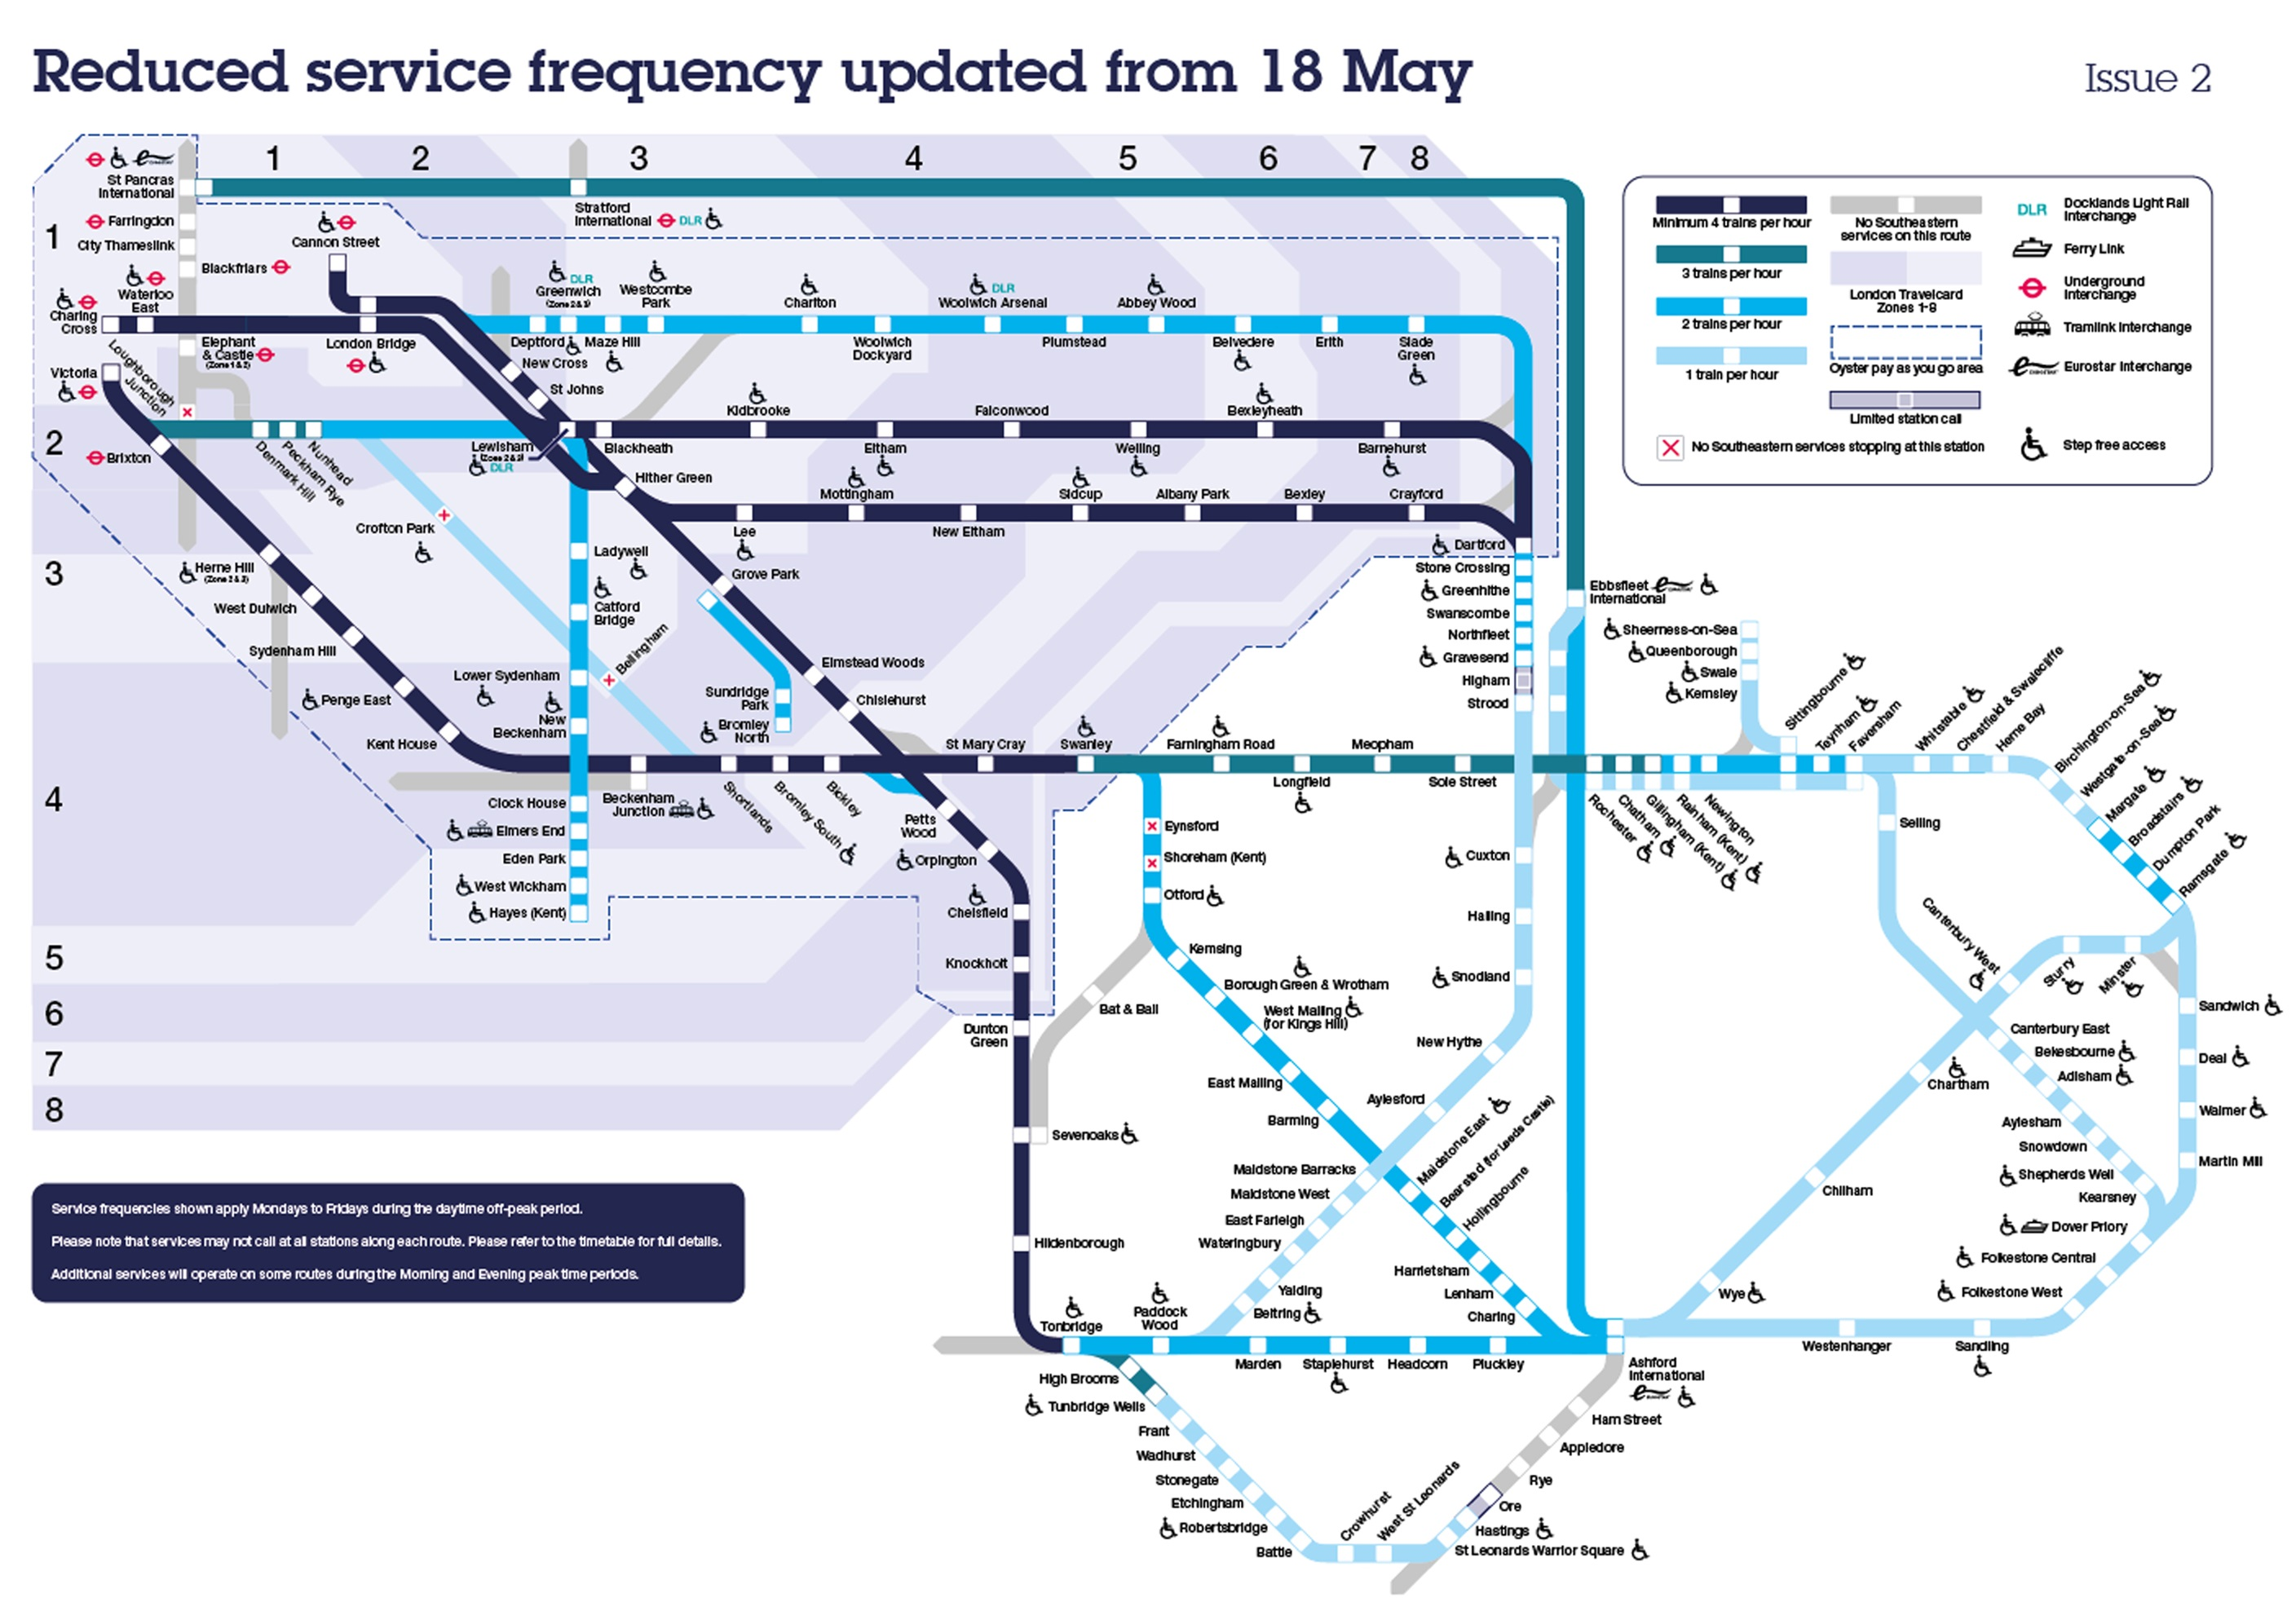 Reduced service frequency map from 18 May